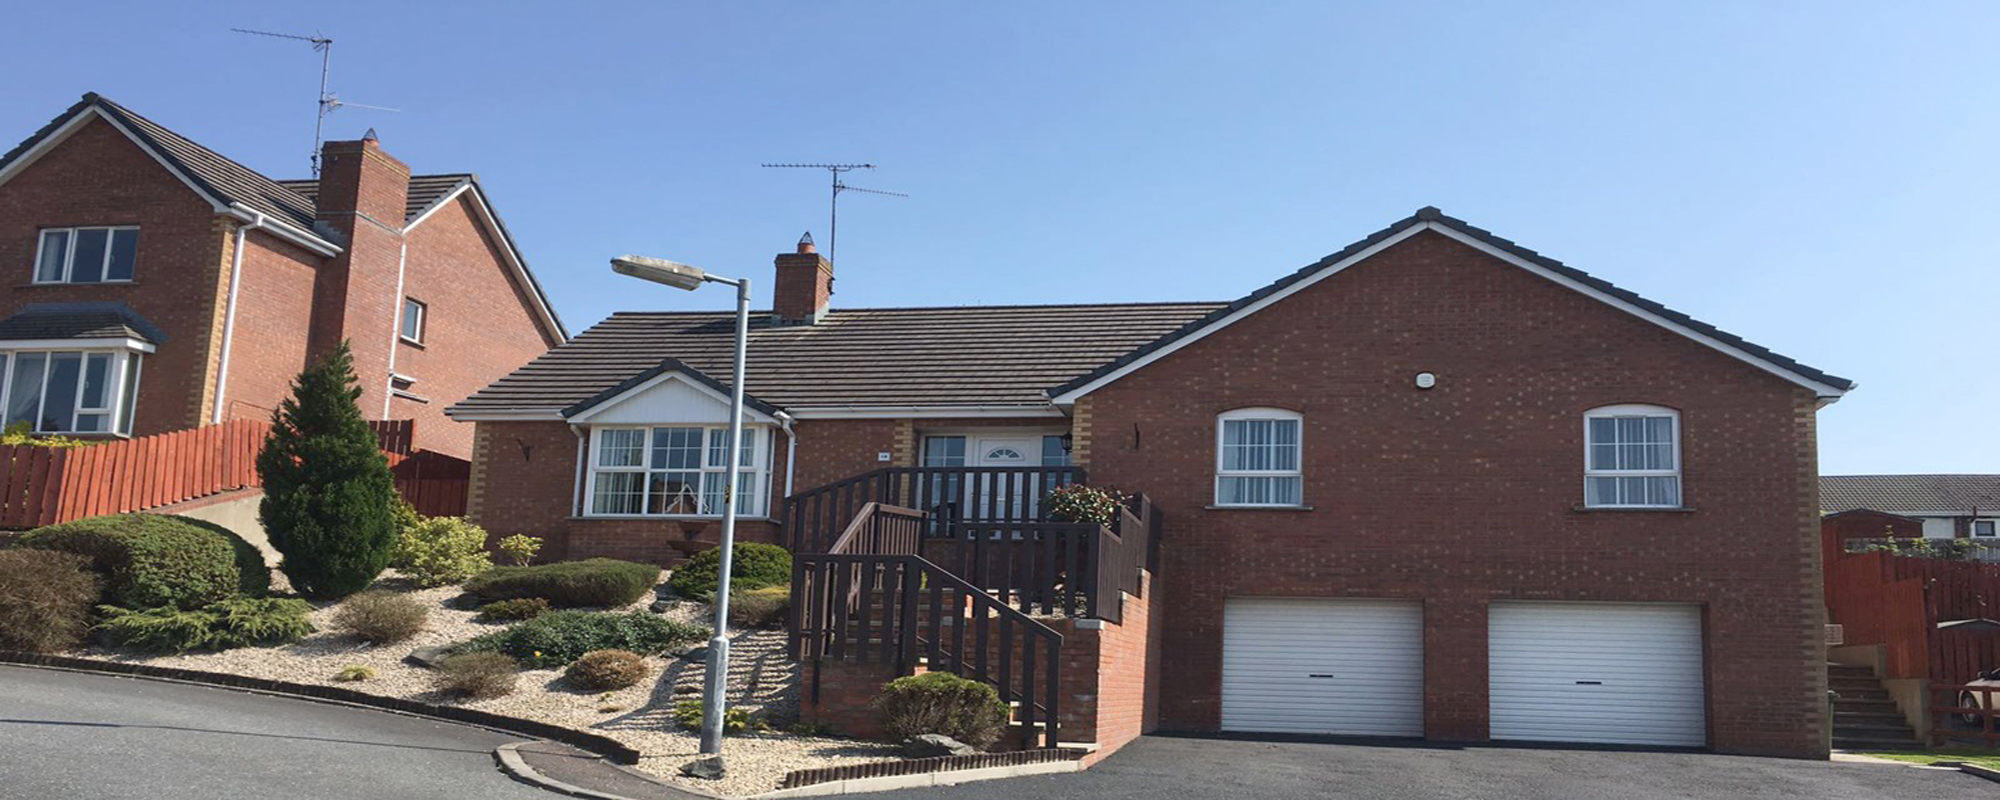 14 Oakridge, Banbridge, BT32 4RT